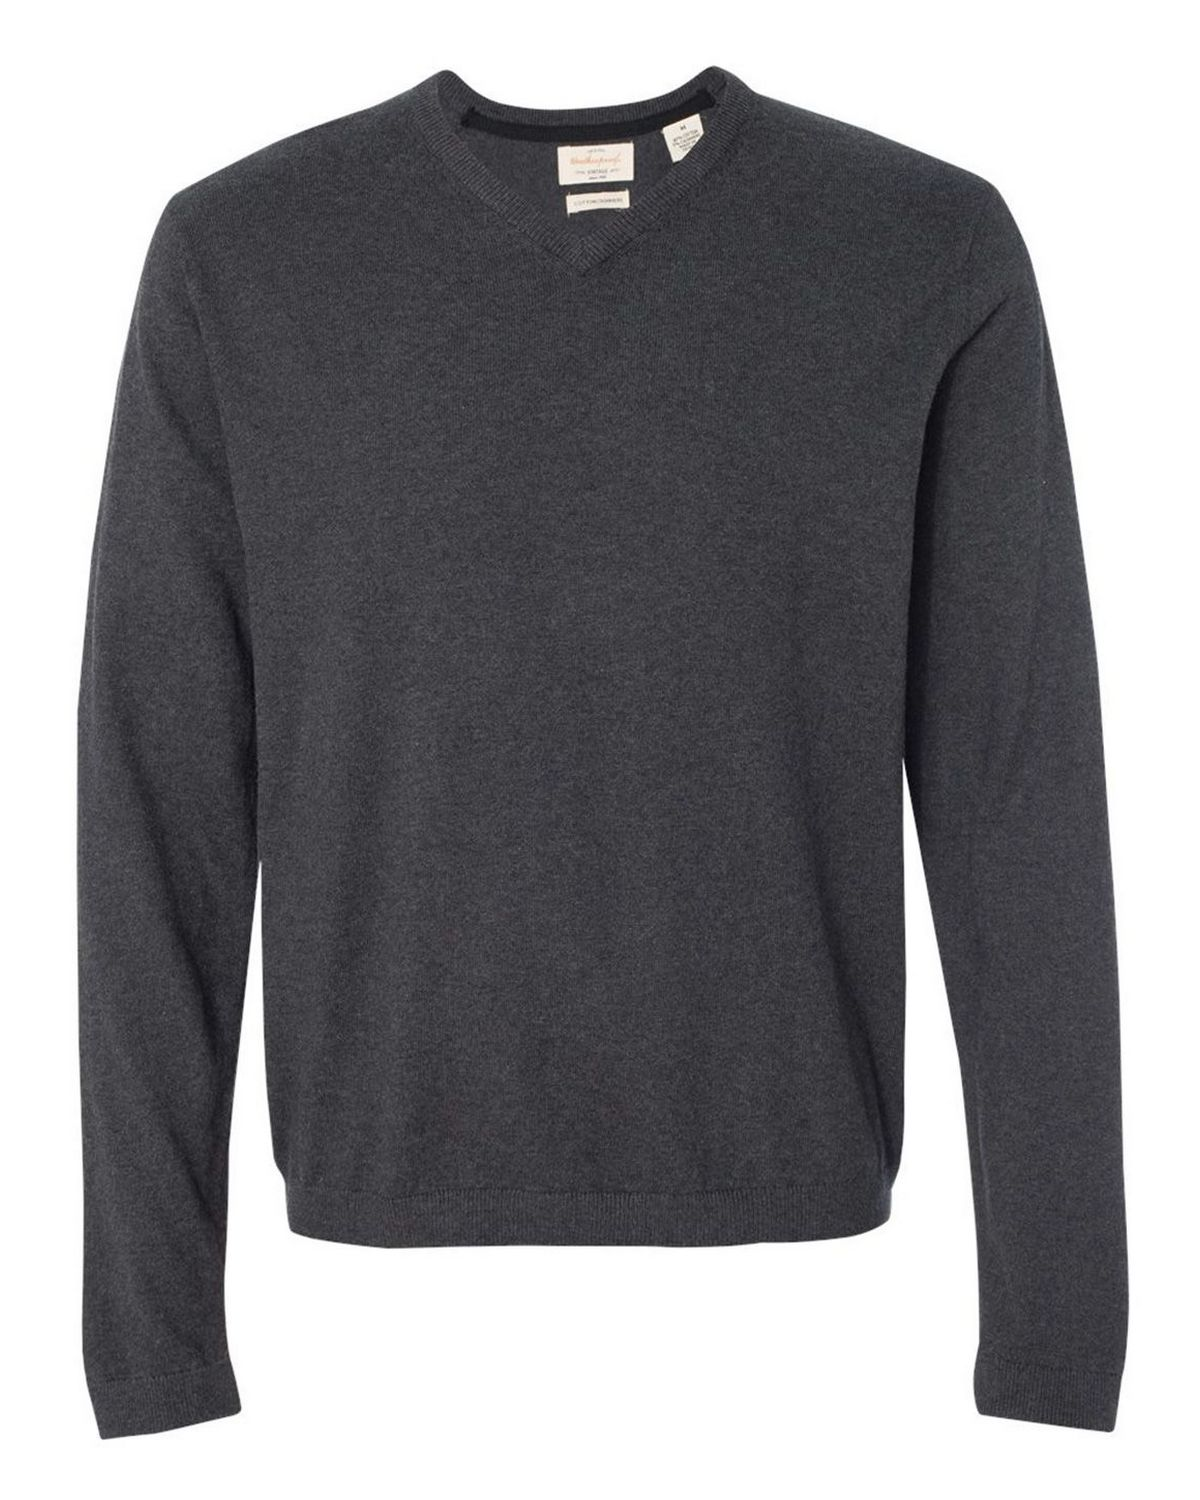 Weatherproof 151377 Men's Vintage Cotton Cashmere V Neck Sweater